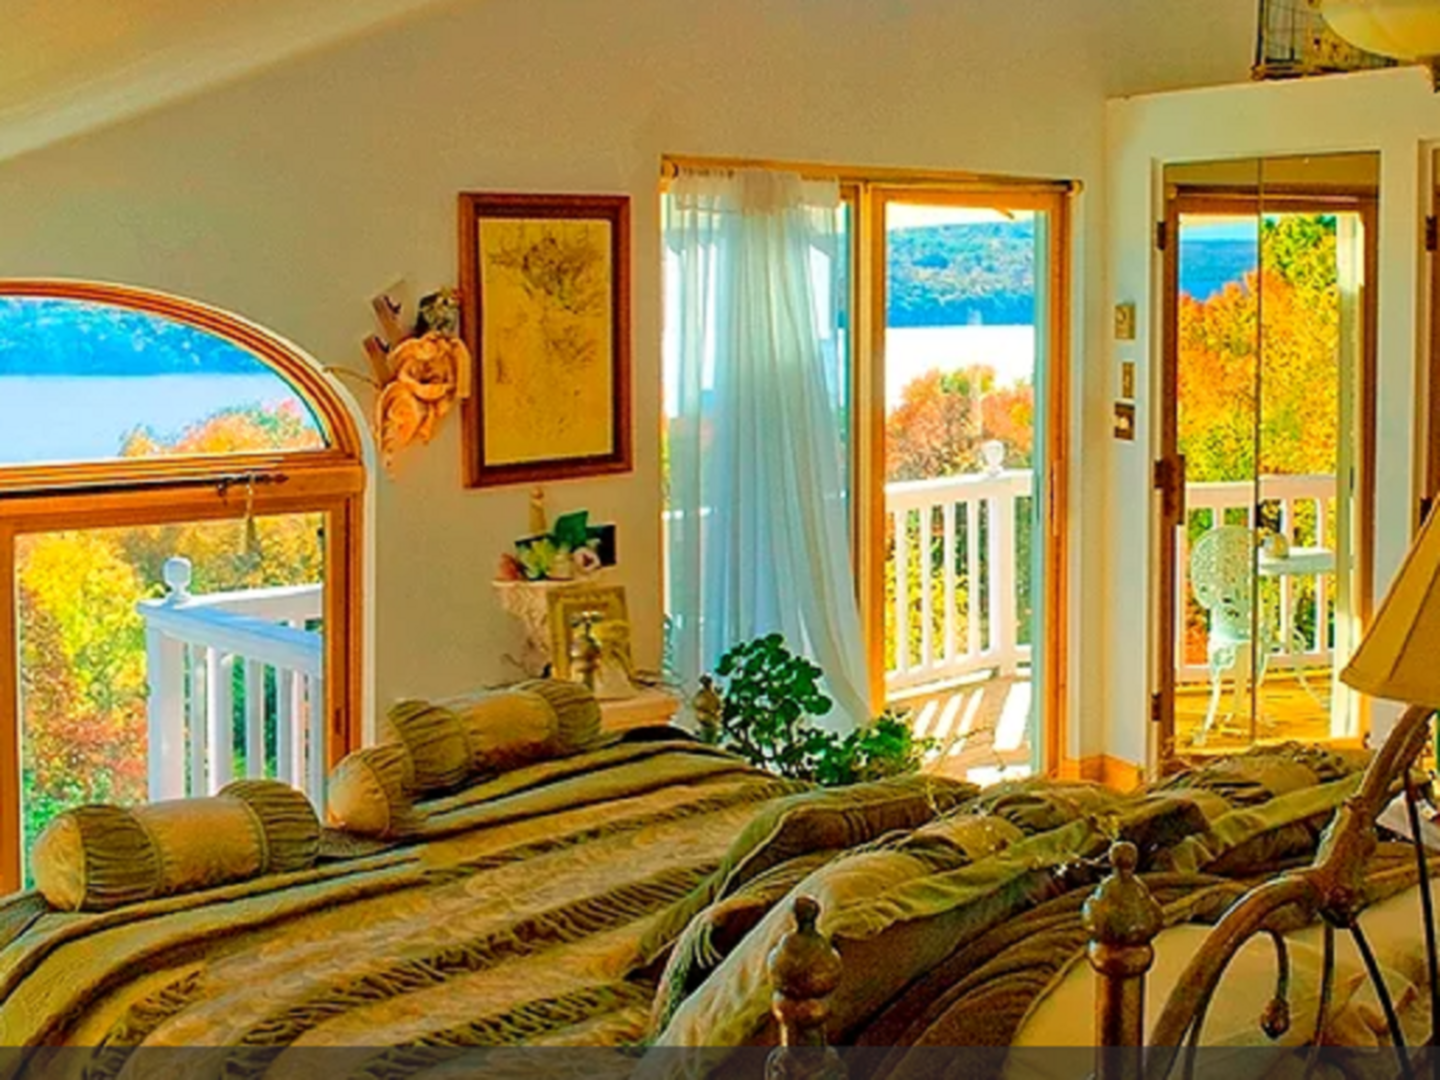 A living room filled with furniture and vase of flowers at Cayuga Lakefront Country Inn and Vineyard Villas.